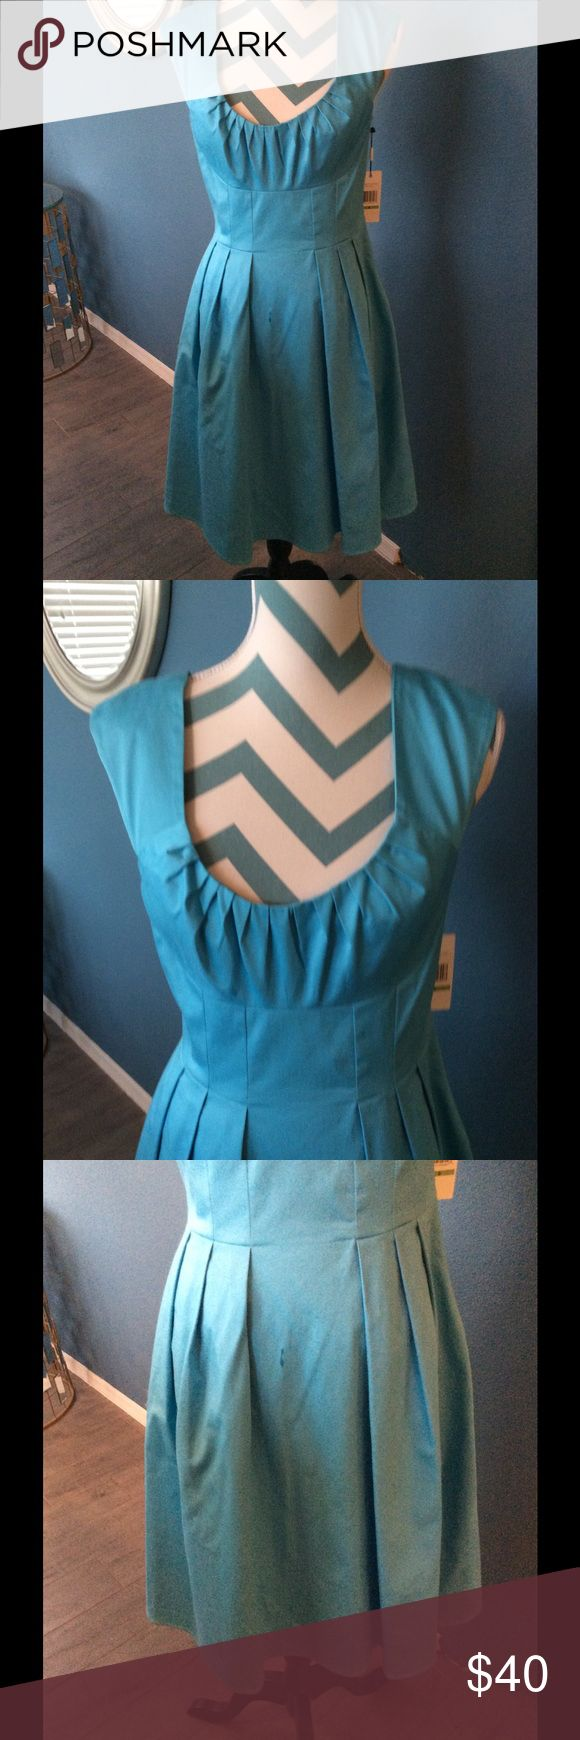 Calvin Klein NWT Dress, SZ 8 Calvin Klein new with tags turquoise cotton dress with the deep V-neck and gather details on the front bodice, an empire waist pleated skirt from the back back zipper fully lined a beautiful dress great for upcoming Easter Calvin Klein Dresses Midi